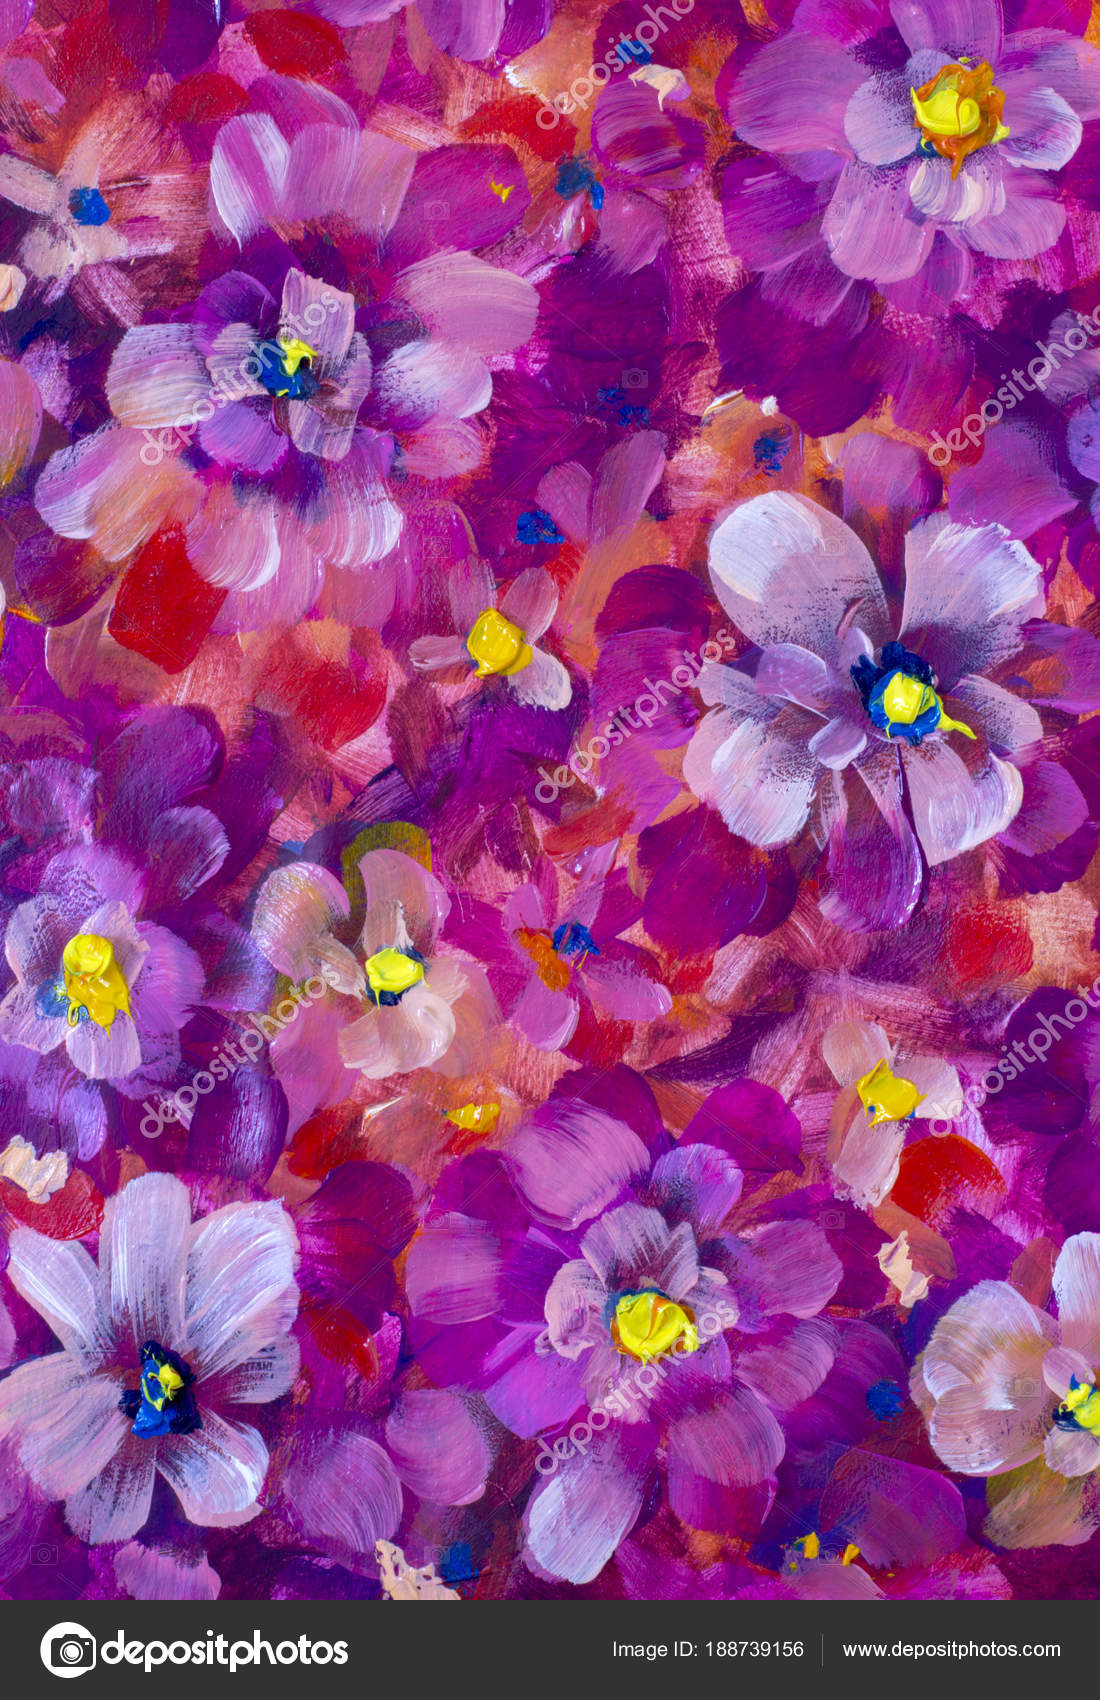 Red Violet Flowers Pansy Violet Close Oil Painting Abstract Orange Stock Photo C Weris7554 188739156